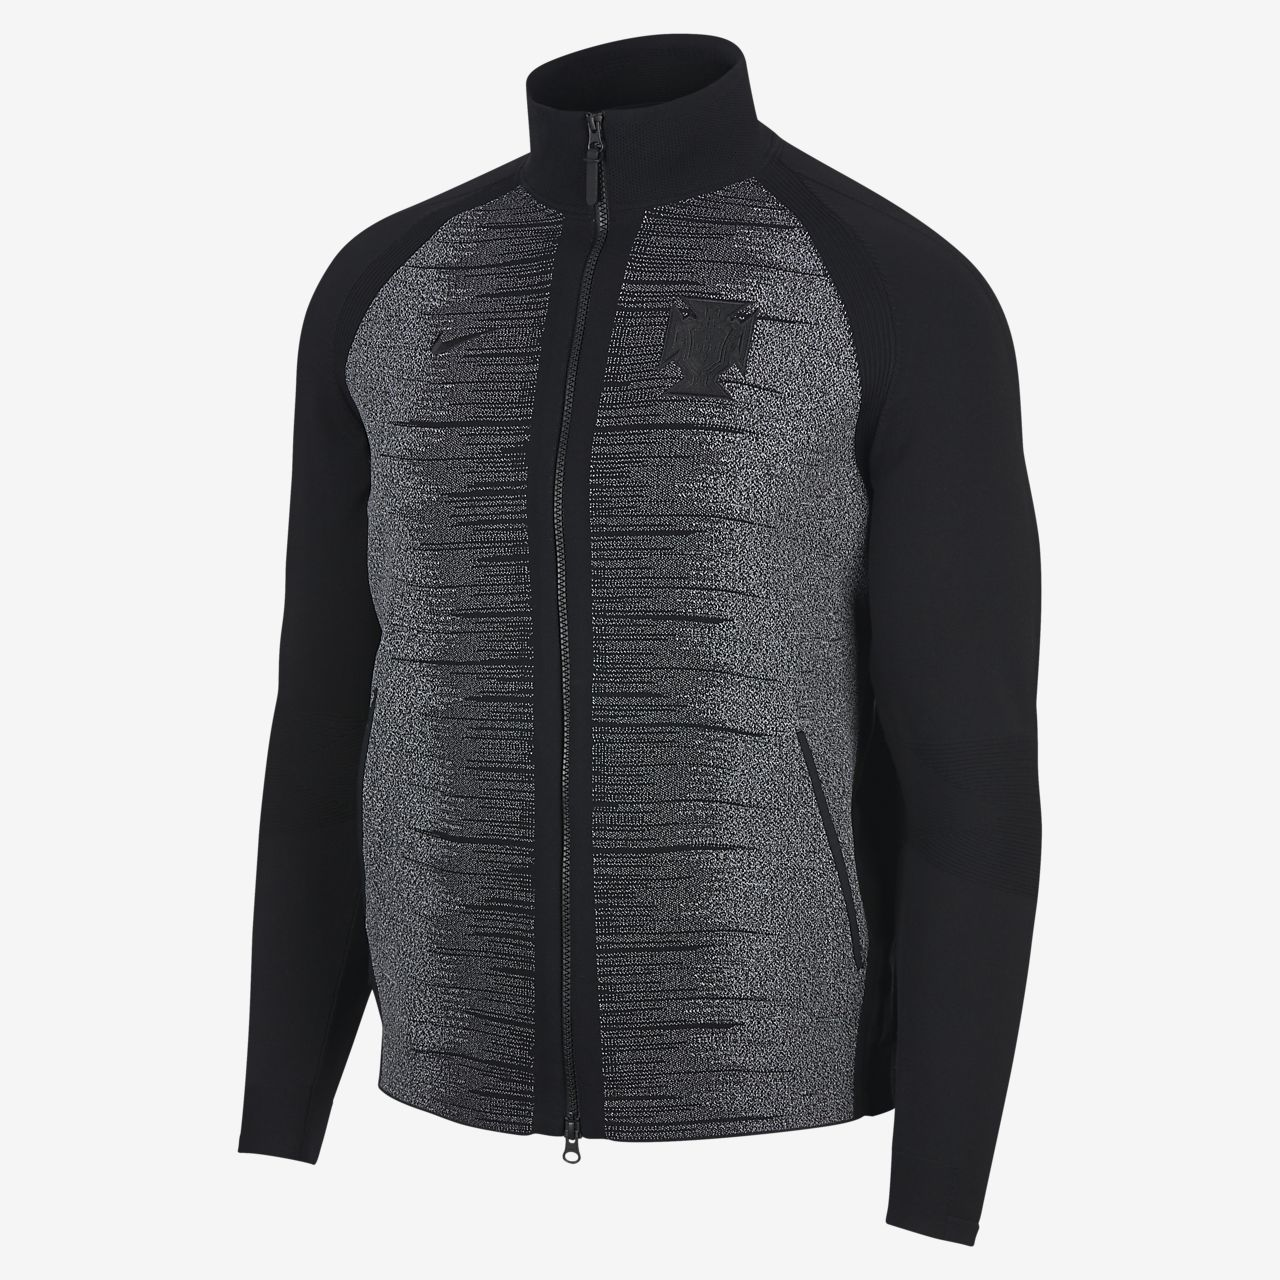 meilleure sélection e9c1c a8967 Portugal Tech Knit Men's Jacket